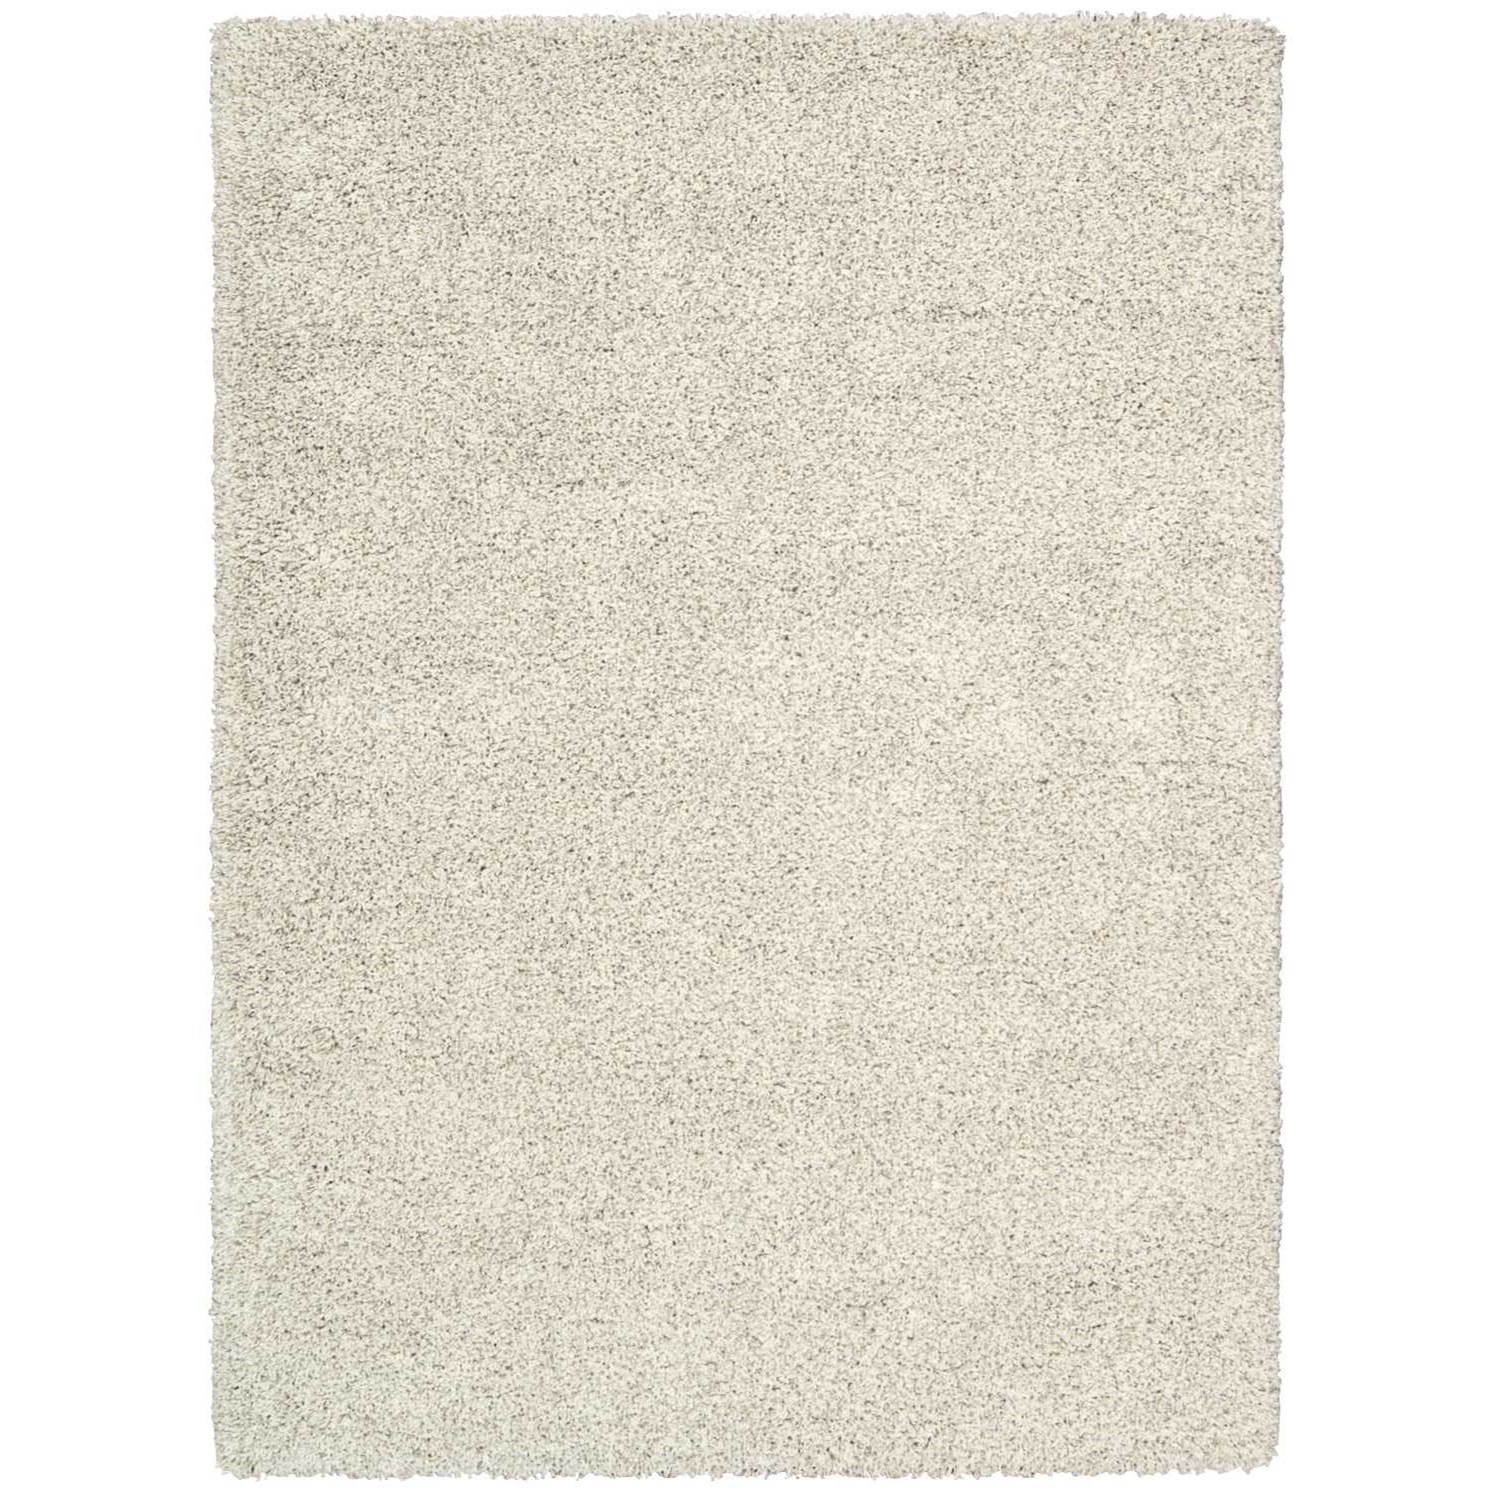 """Amore 5'3"""" x 7'5"""" Bone Rectangle Rug by Nourison at Home Collections Furniture"""